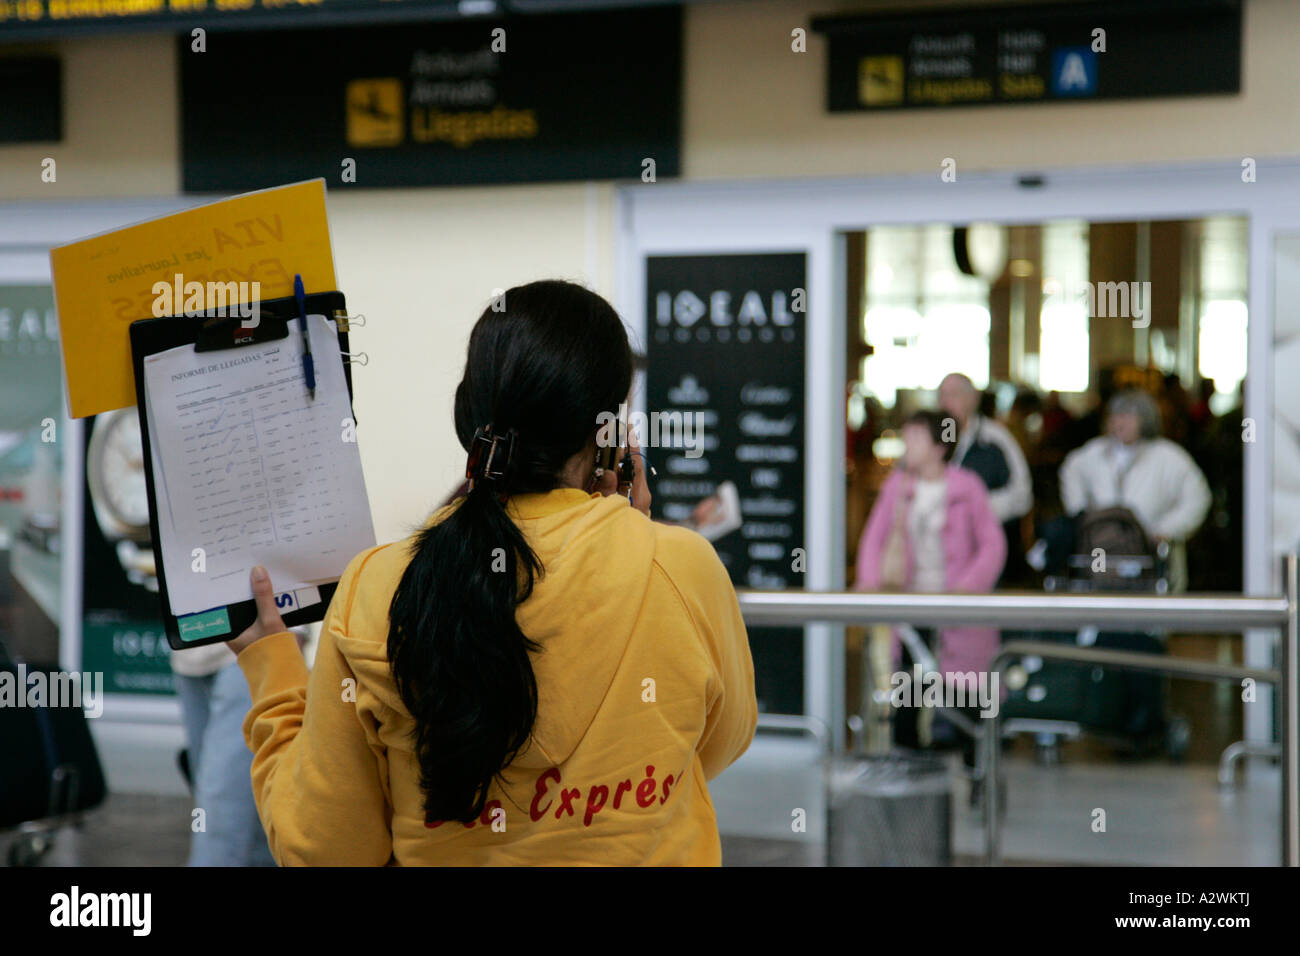 female spanish tour guide in yellow jumper on mobile phone - Stock Image